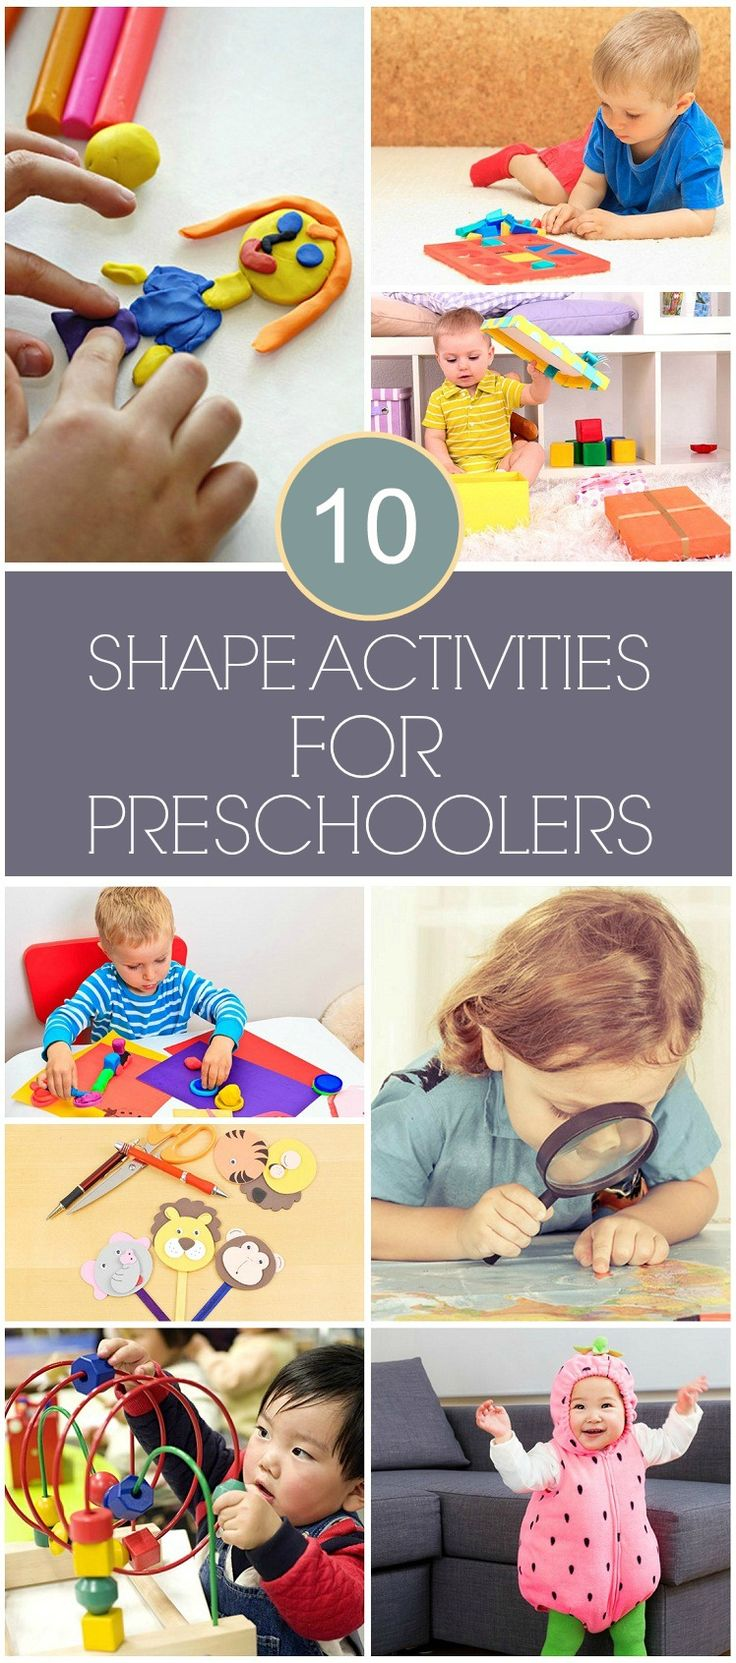 Top 10 Shape Activities For Preschoolers: The ability to identify different shapes is an extremely important visual discrimination skill. Knowing the name of each shape also allows children to then correctly understand descriptions of objects based on shapes.